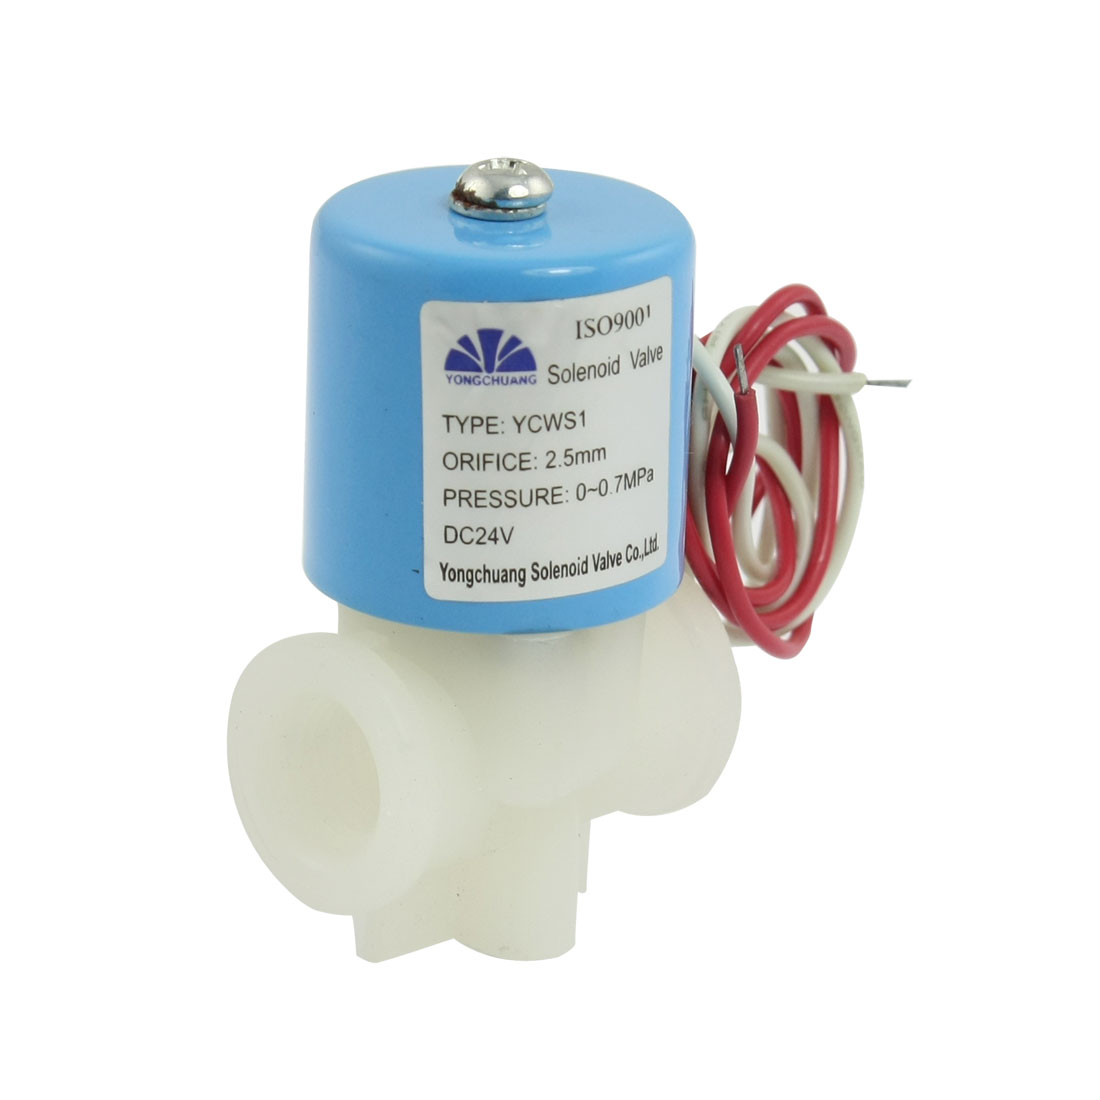 "DC 24V Direct Acting 1/4"" NPT Thread Port Solenoid Valve"